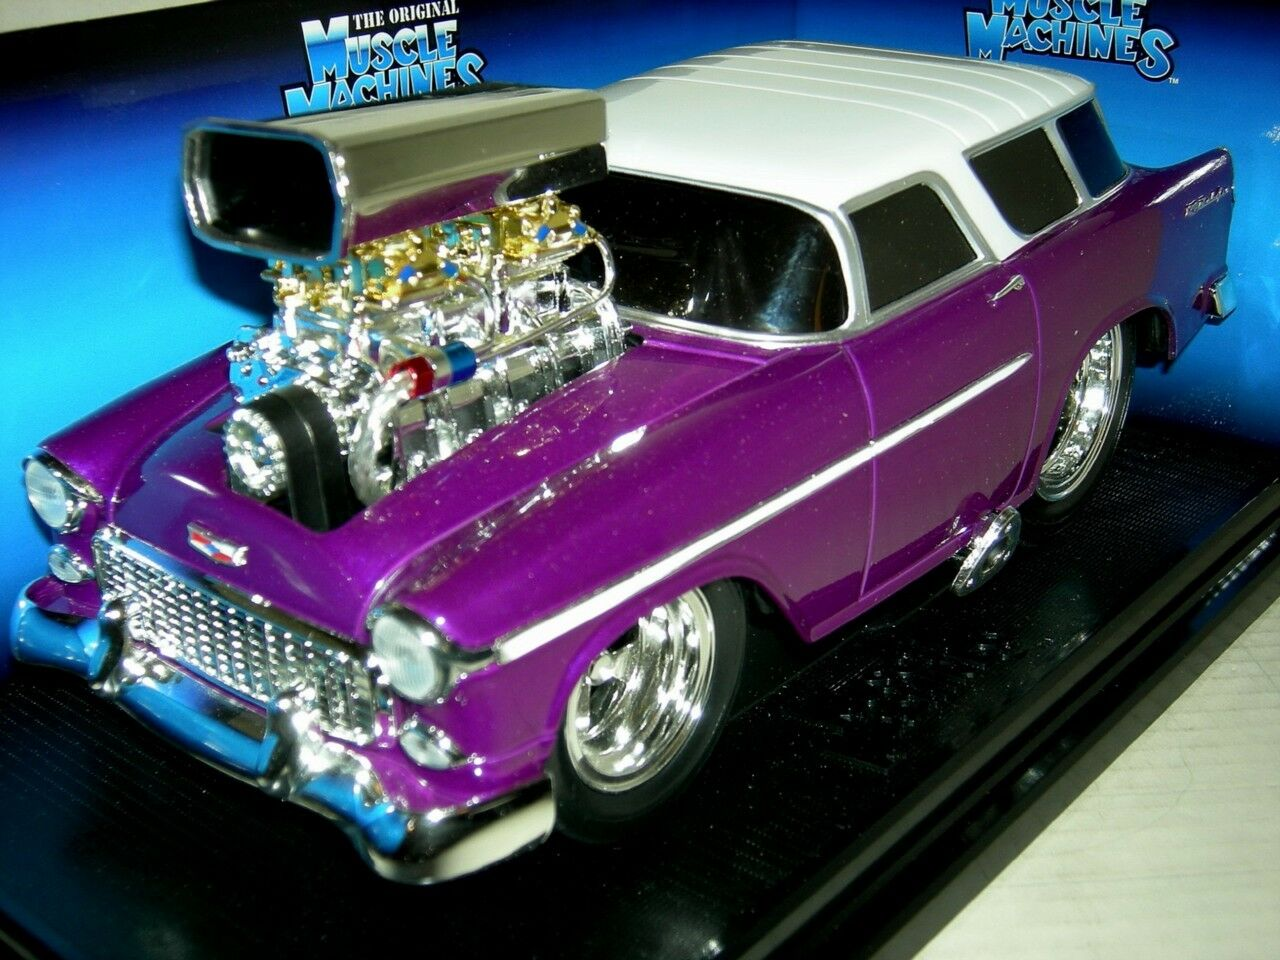 55 CHEVY NOMAD PLUMB  W  WHITE TOP  MUSC.MACH.MIB1 18